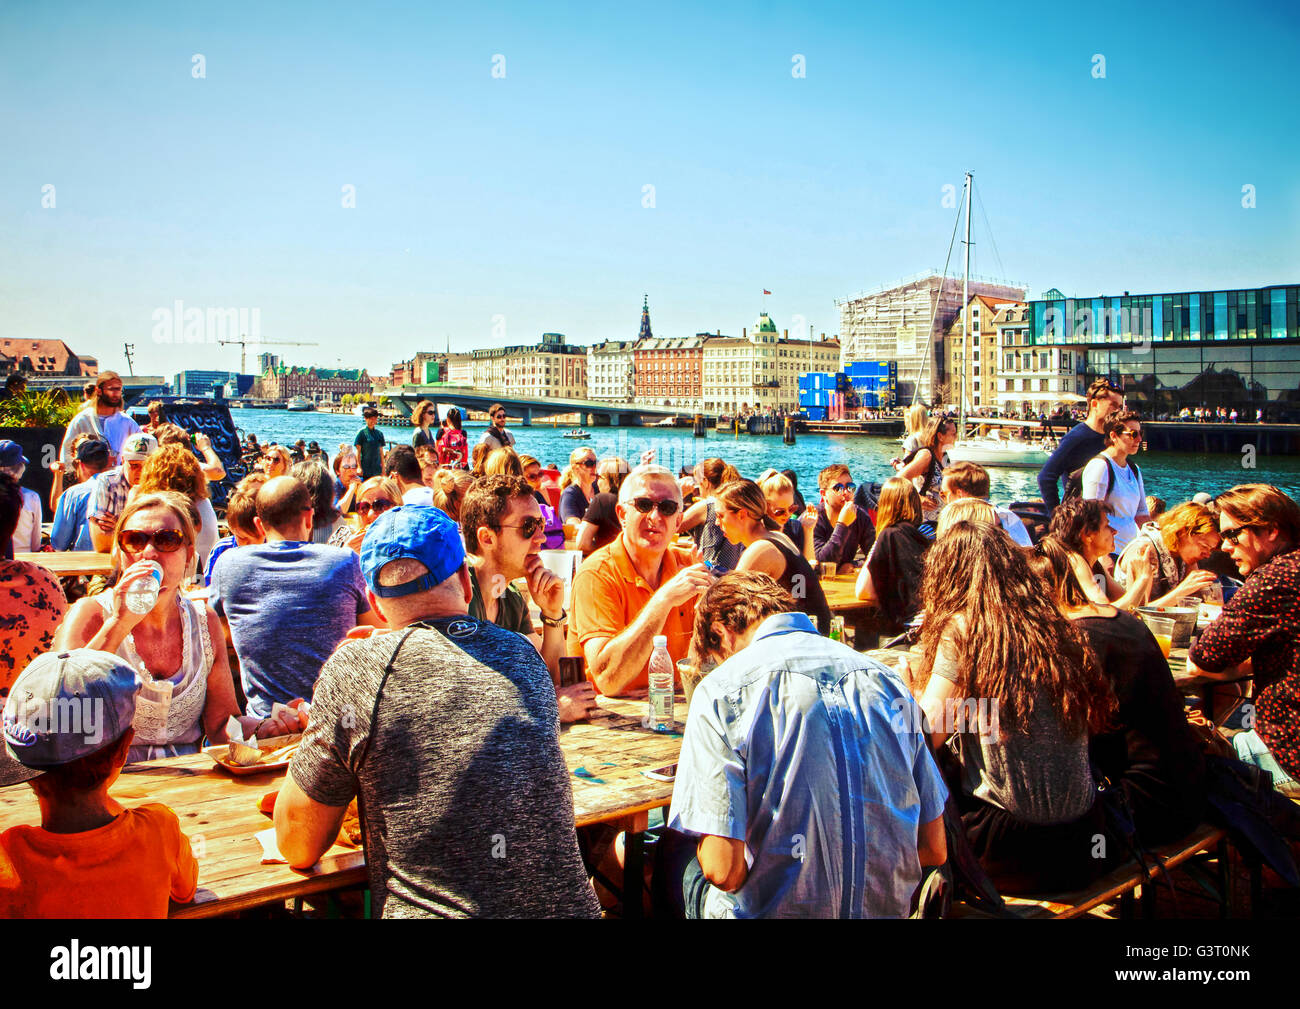 Copenhagen - people enjoy the beautiful weekend eating outside at street food market of Paper Island - Stock Image